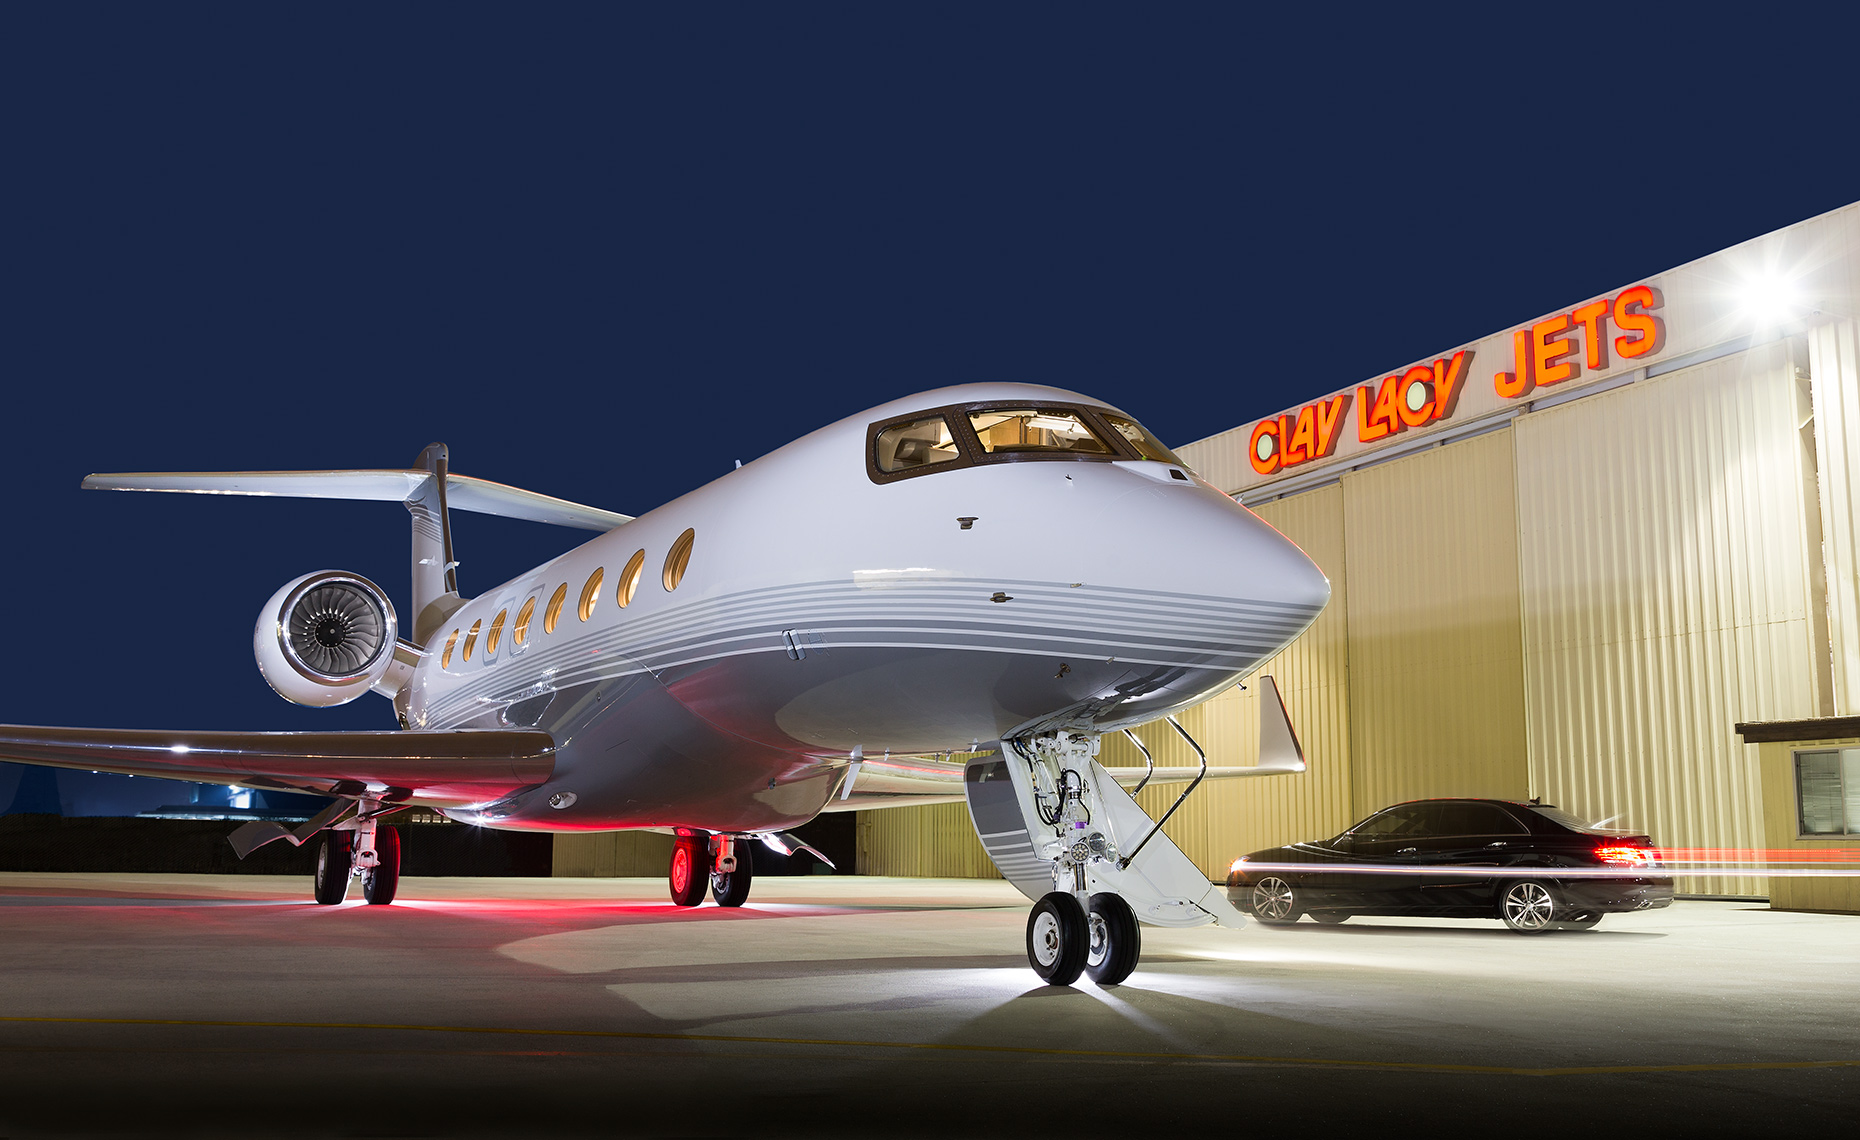 Gulfstream G650 Business Jet at Clay Lacy Aviation